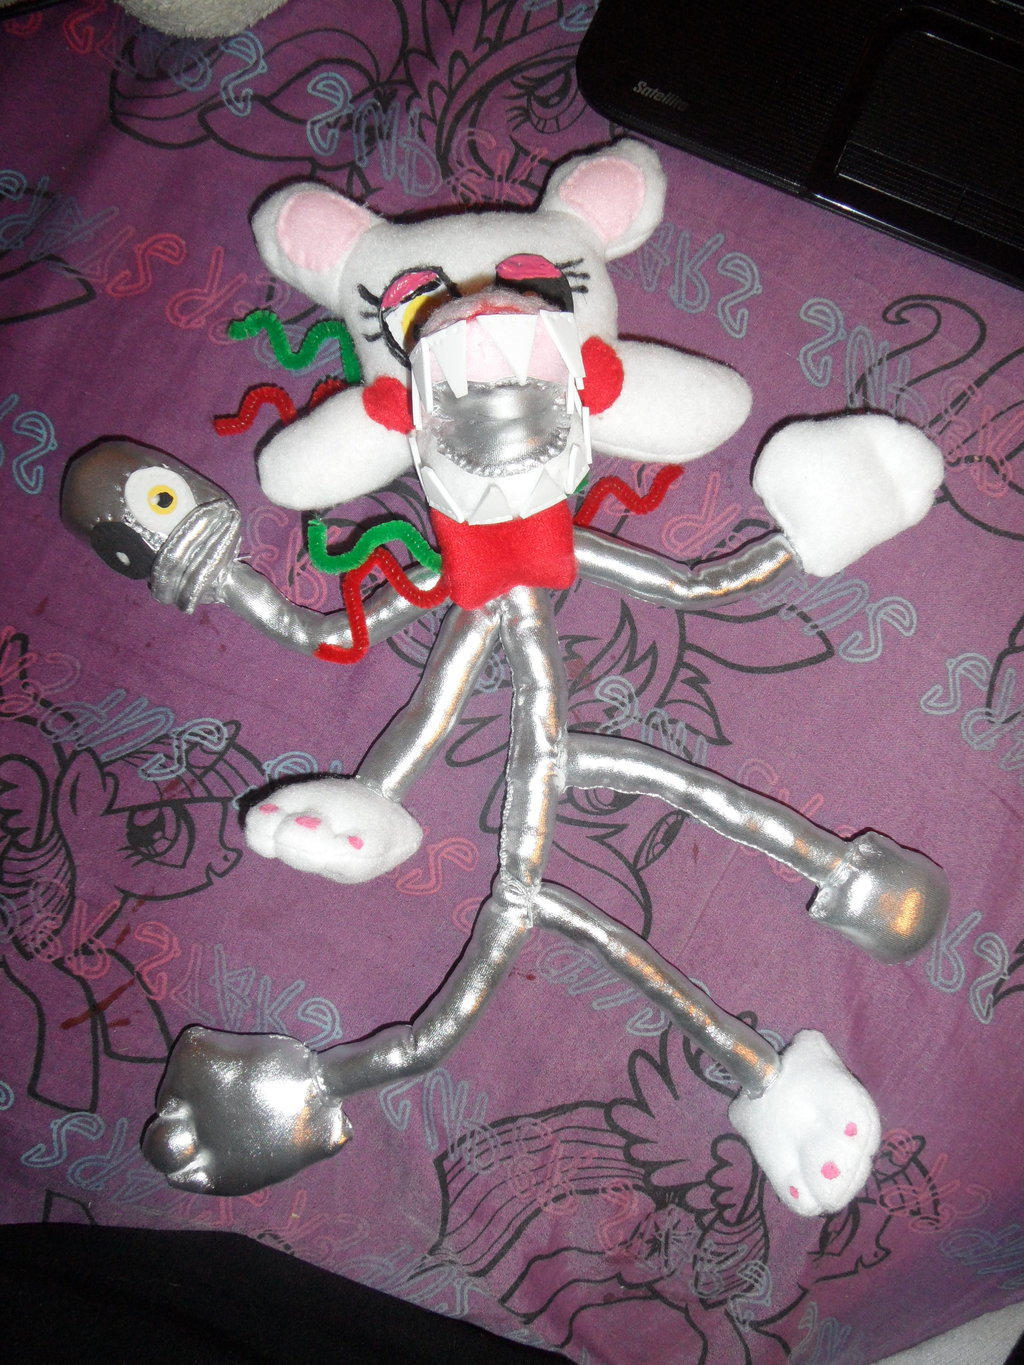 Mangle plushie for sale myideasbedroom com - Fnaf Plush Shop Myideasbedroom Com Mangle Plush For Sale Myideasbedroom Com